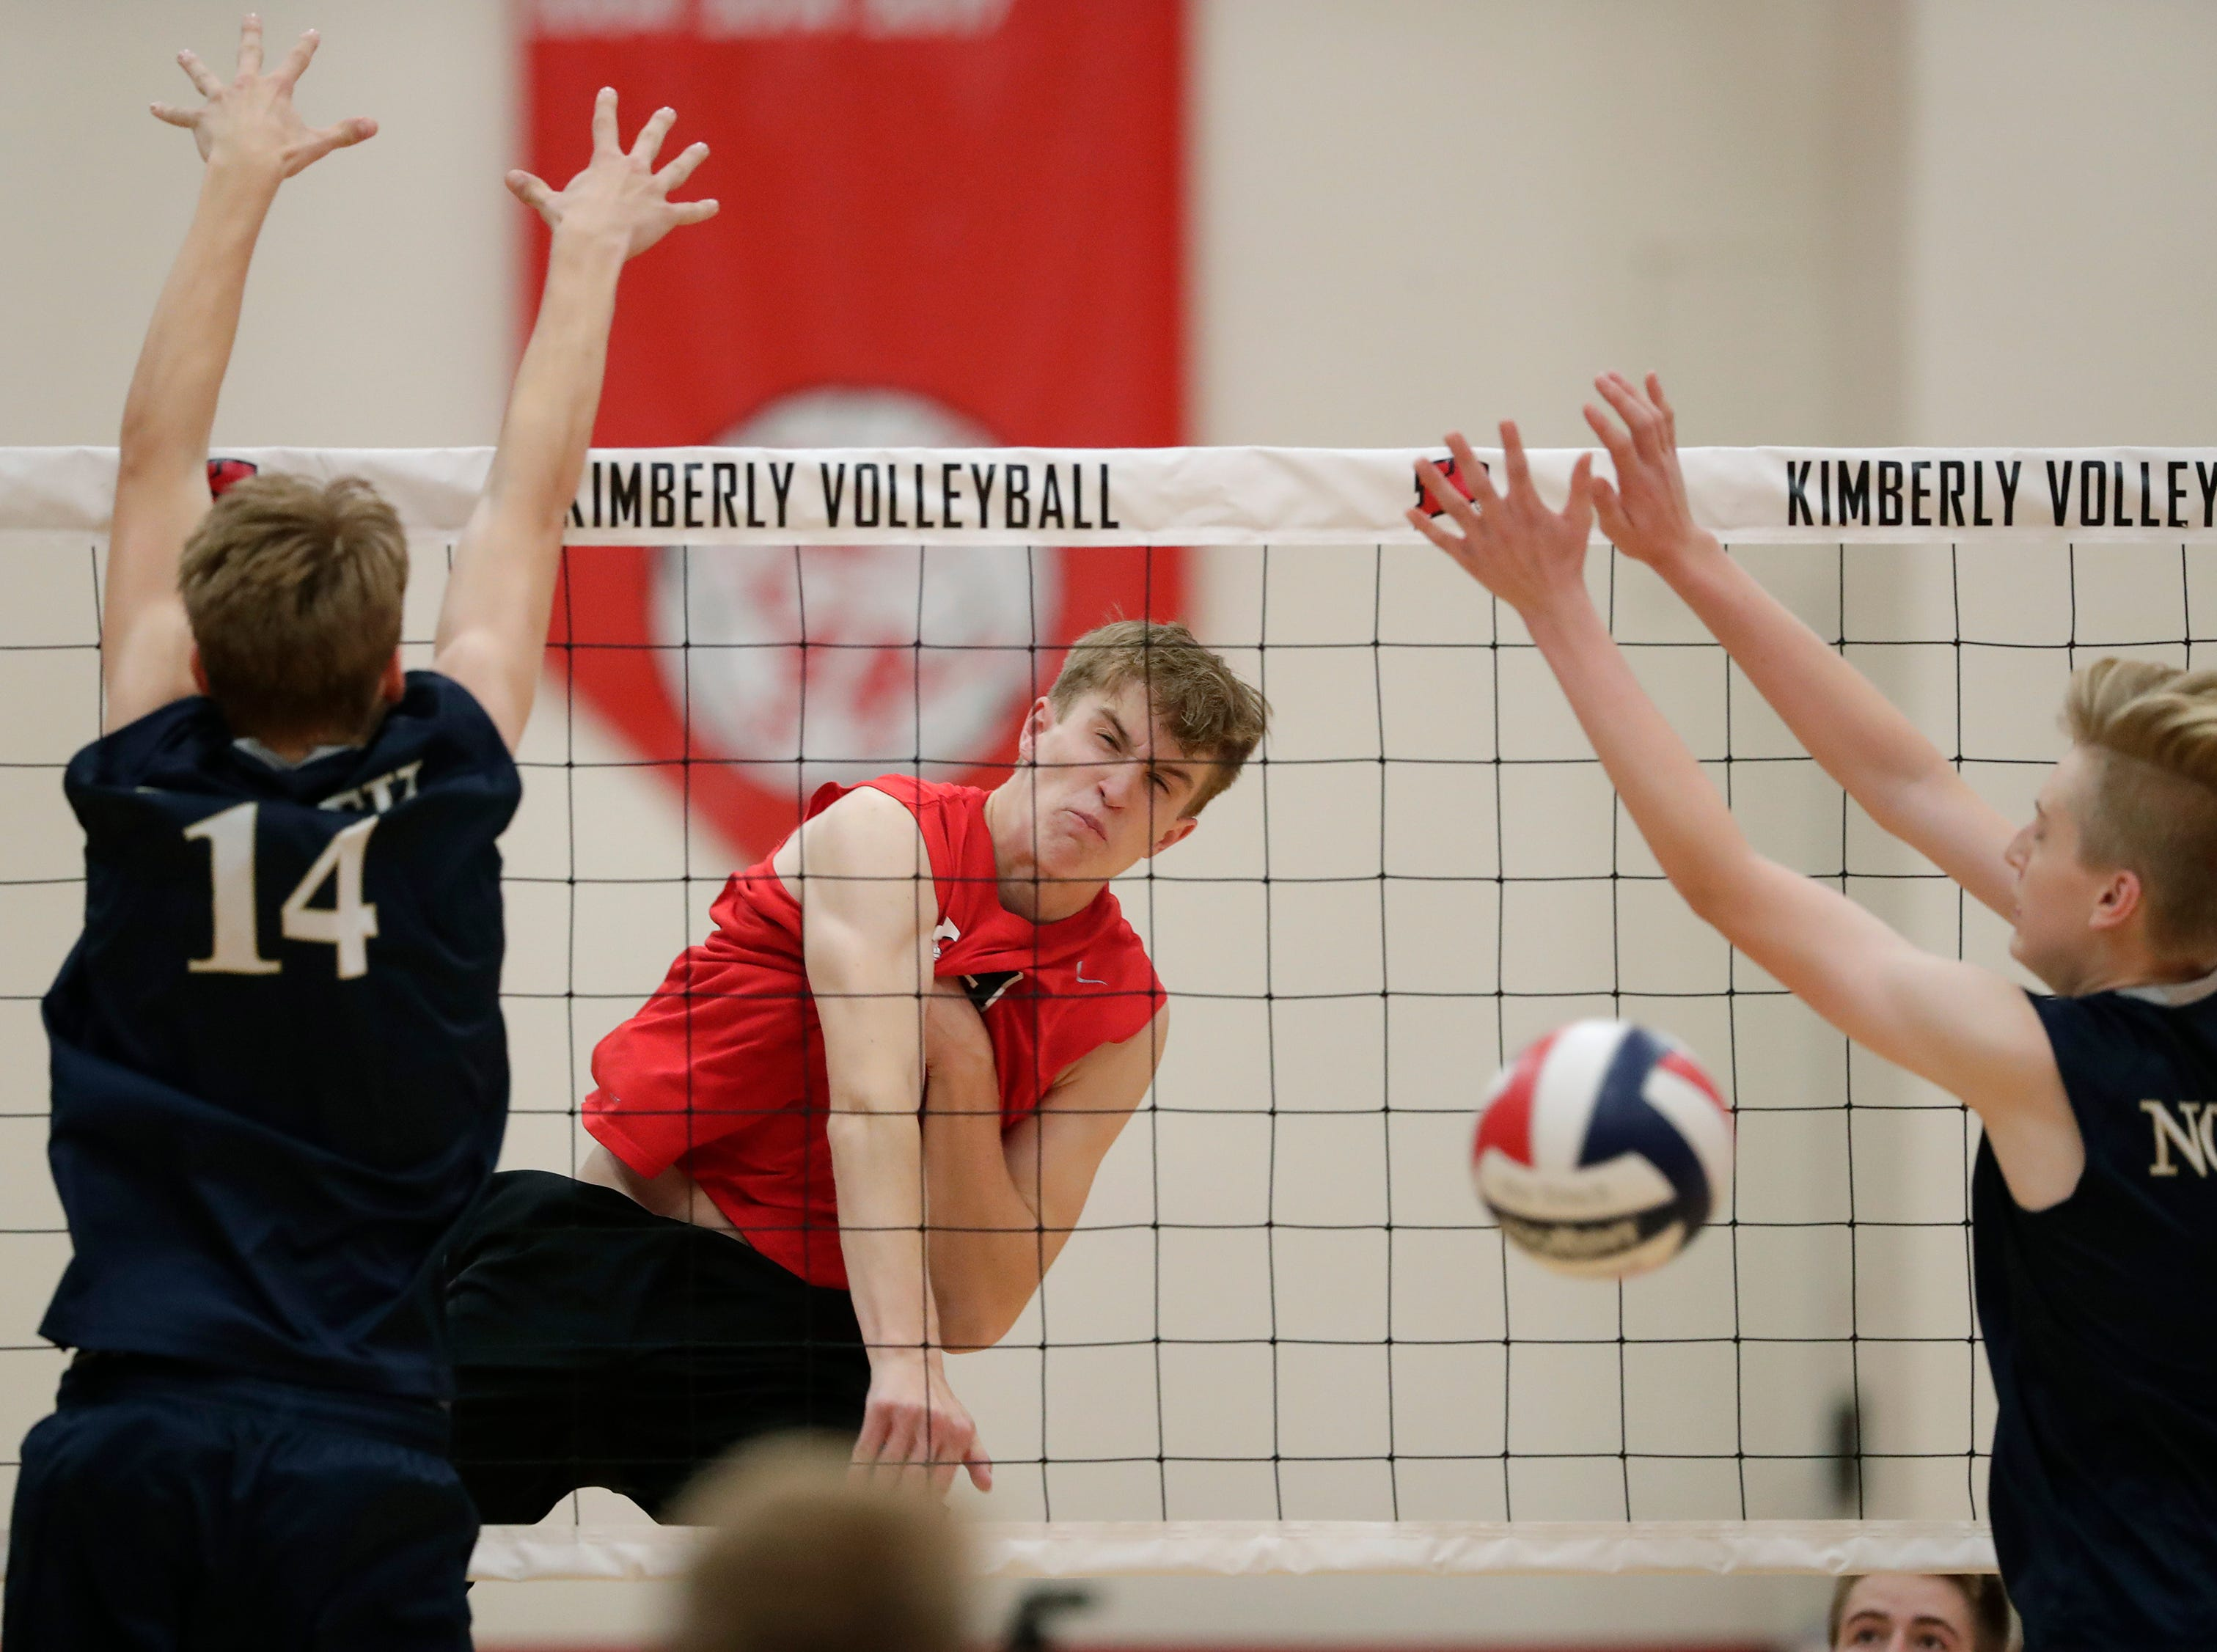 Kimberly High School's Tommy Clausz (9) spikes the ball against Appleton North High School's Charlie Figy (14) and Chase Haferman (7) during their boys volleyball match Tuesday, Oct. 9, 2018, in Kimberly, Wis. 